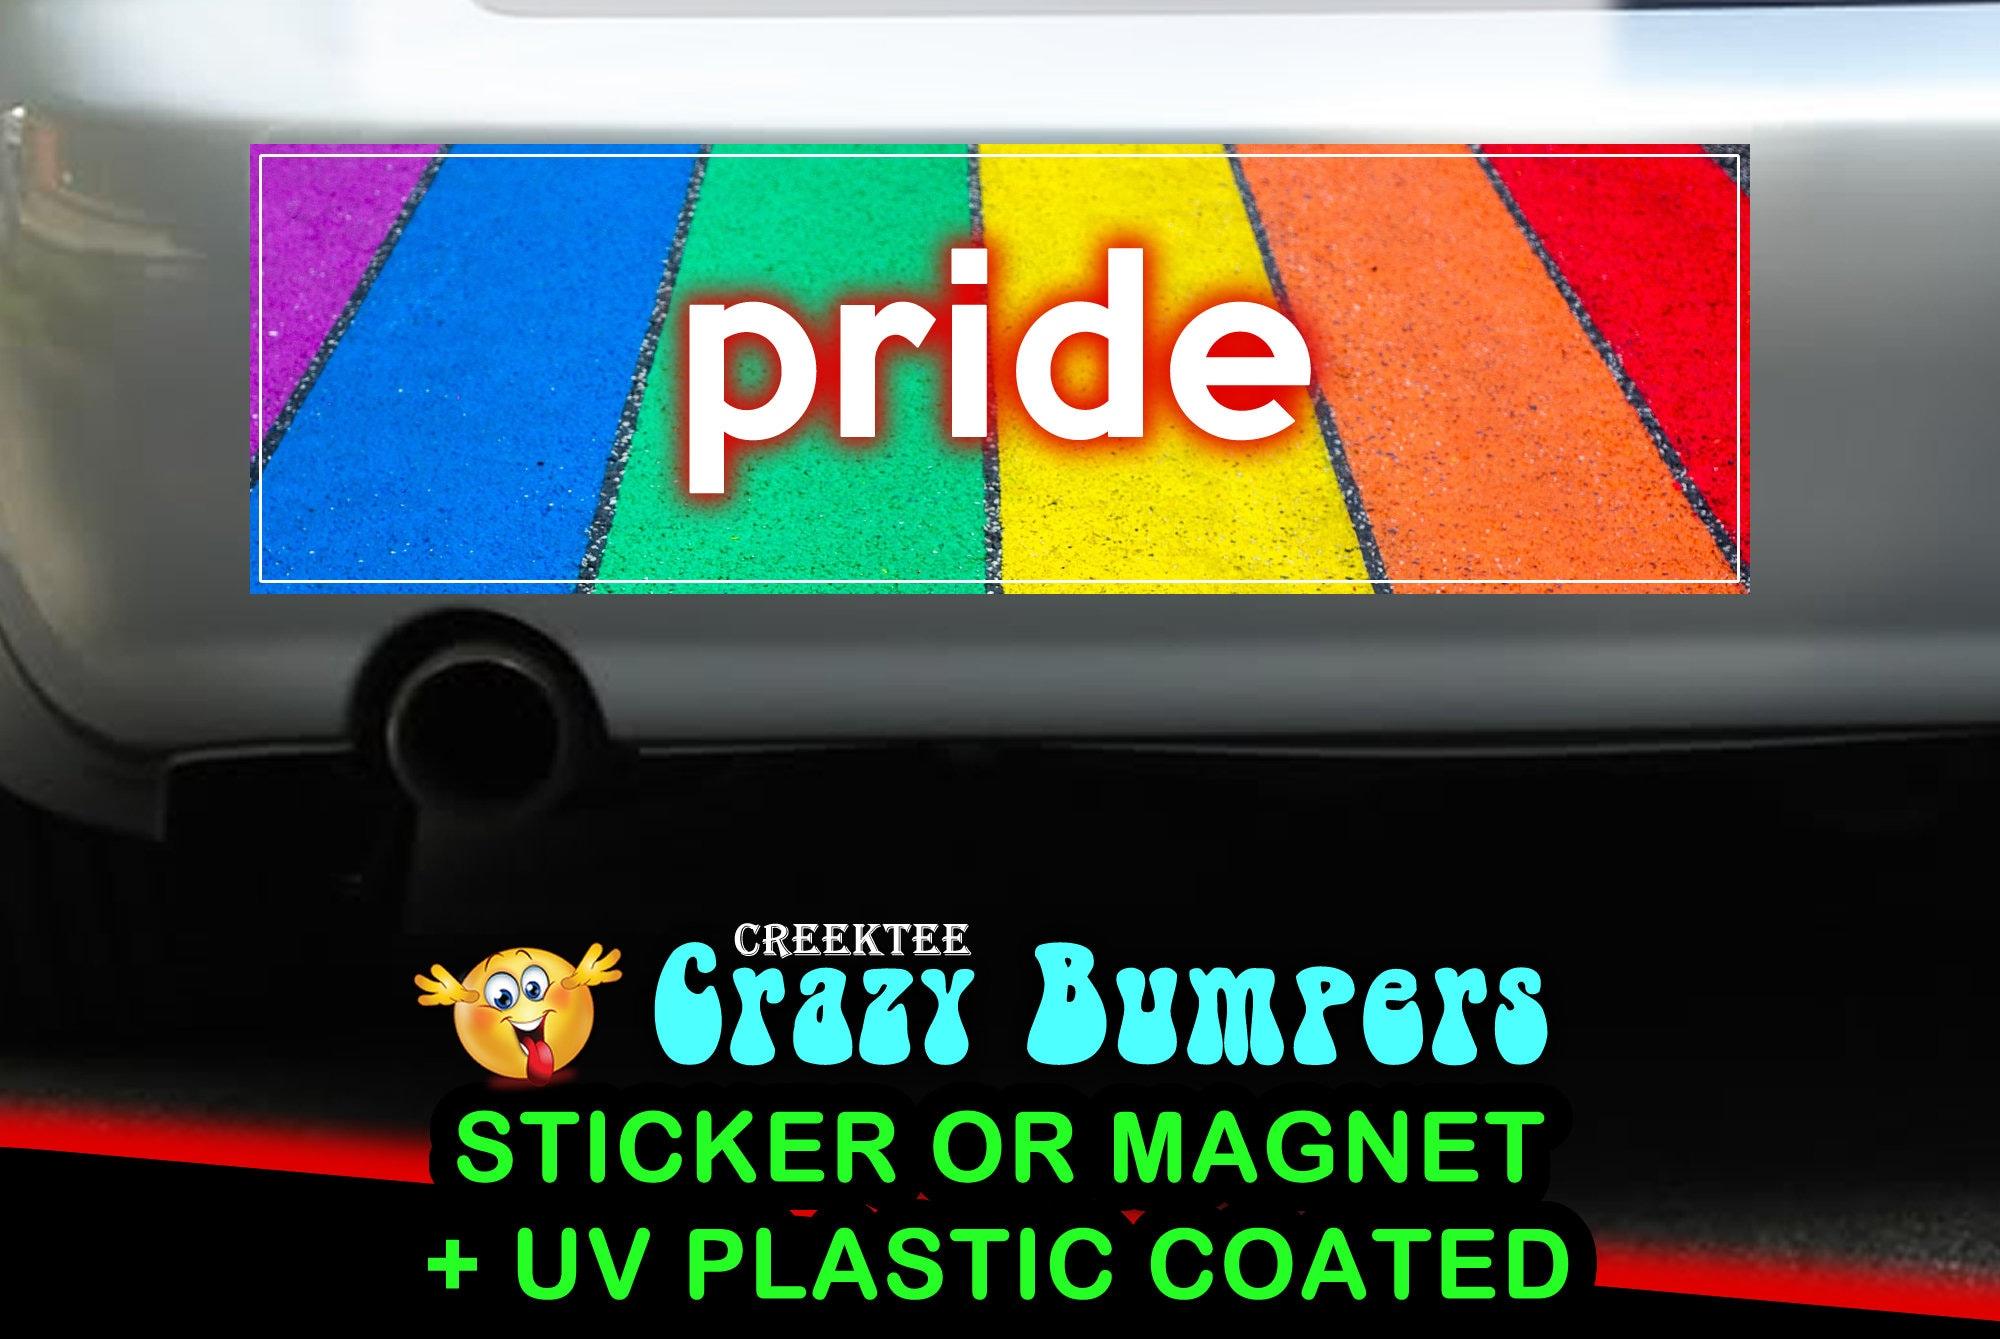 CAD$7.99 - Rainbow Pride Sidewalk 10 x 3 Bumper Sticker or Magnetic Bumper Sticker Available